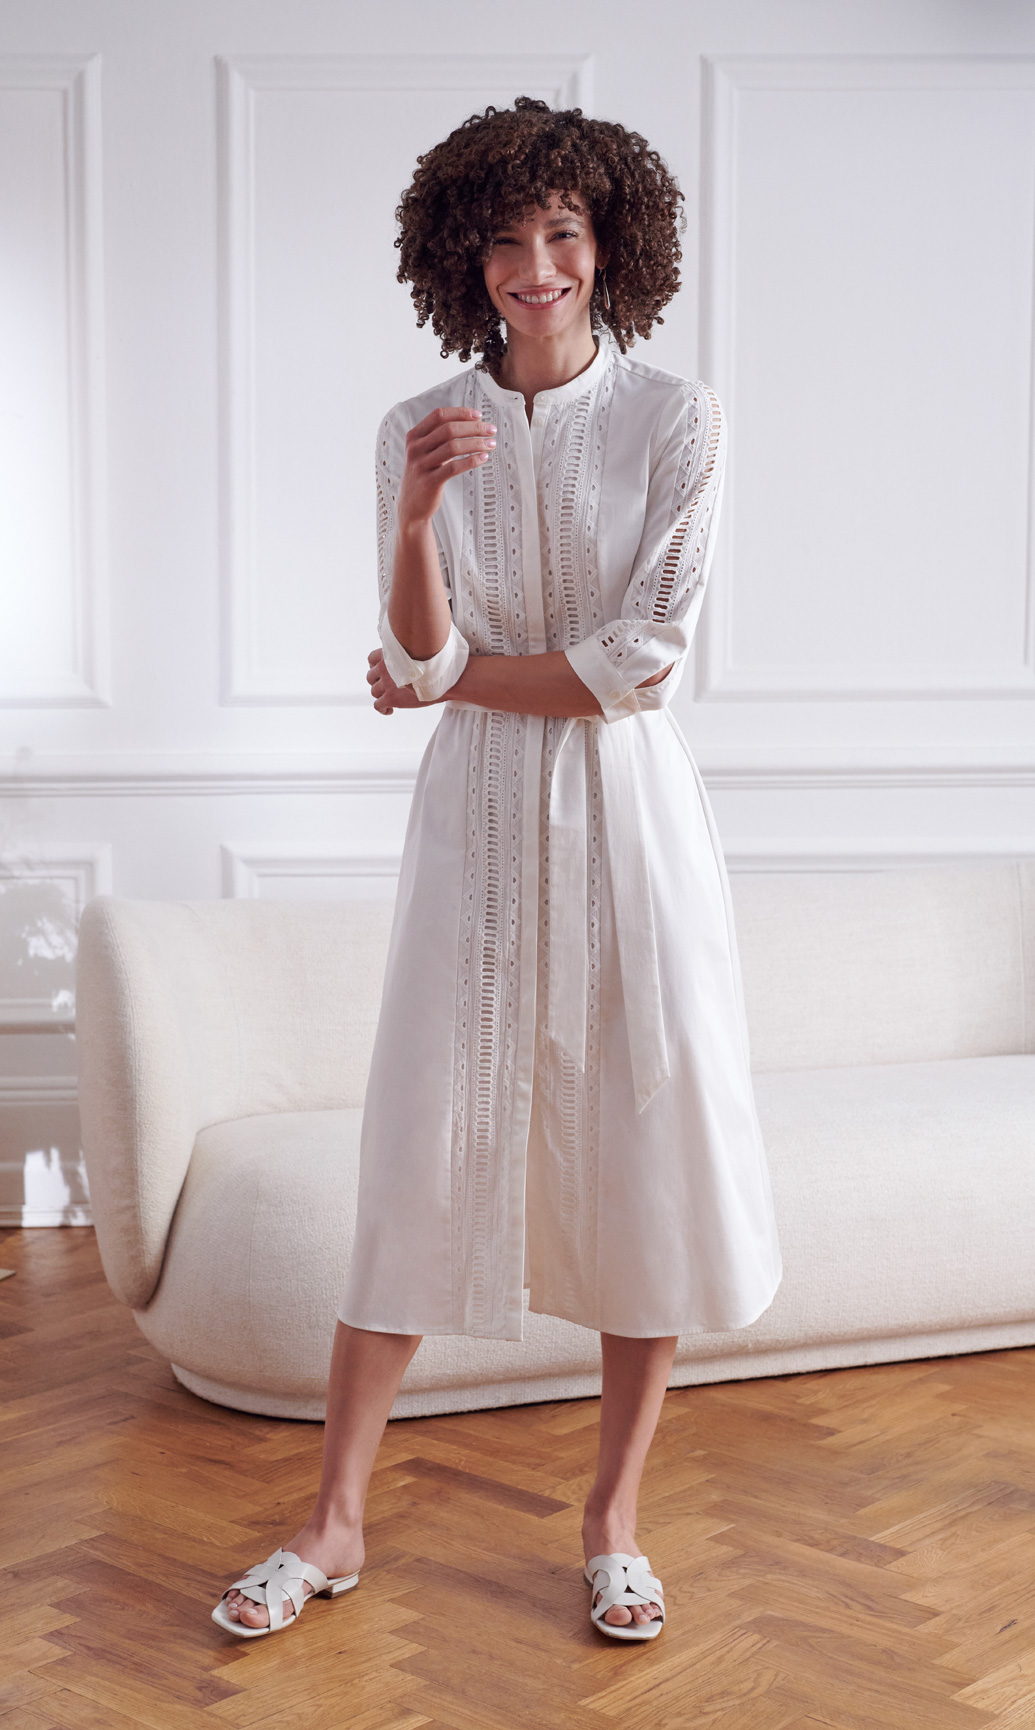 Model wearing a white cotton midi dress and leather slides stands beside a white boucle sofa.